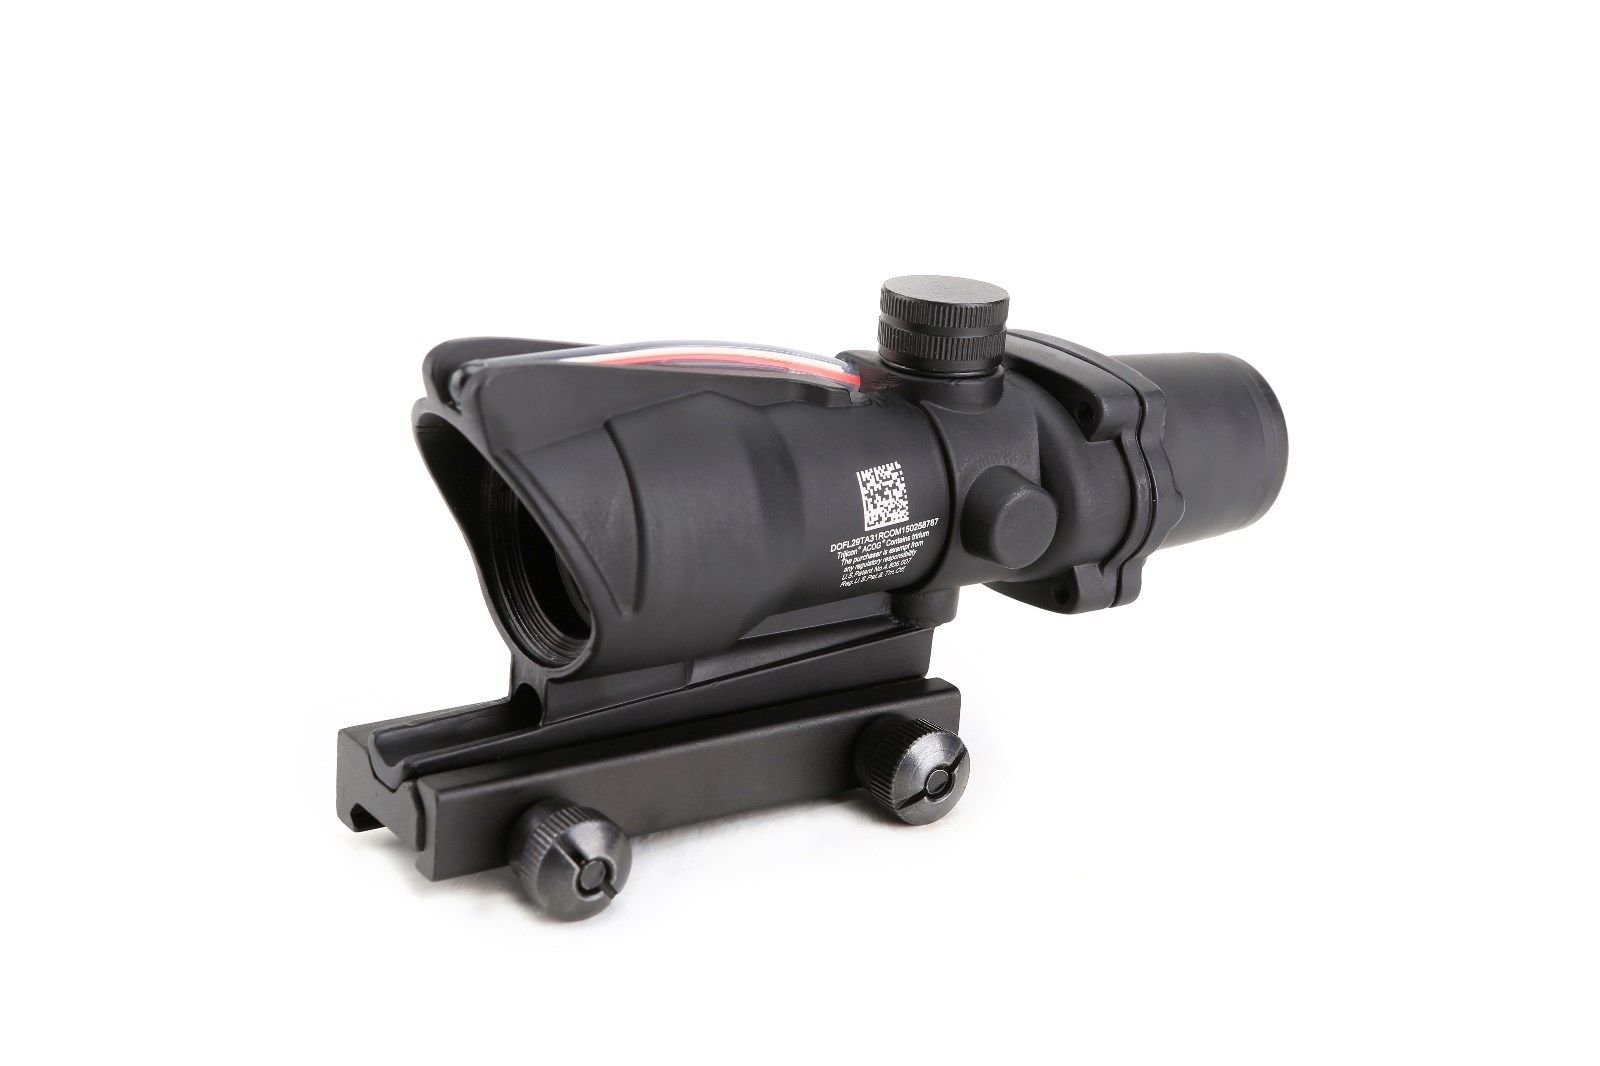 Magorui Hunting ACOG 4x32 Red dot Rifle scope Sight Fiber Optics Red Illuminated js 11 чайная пара роза рафаэлло pavone